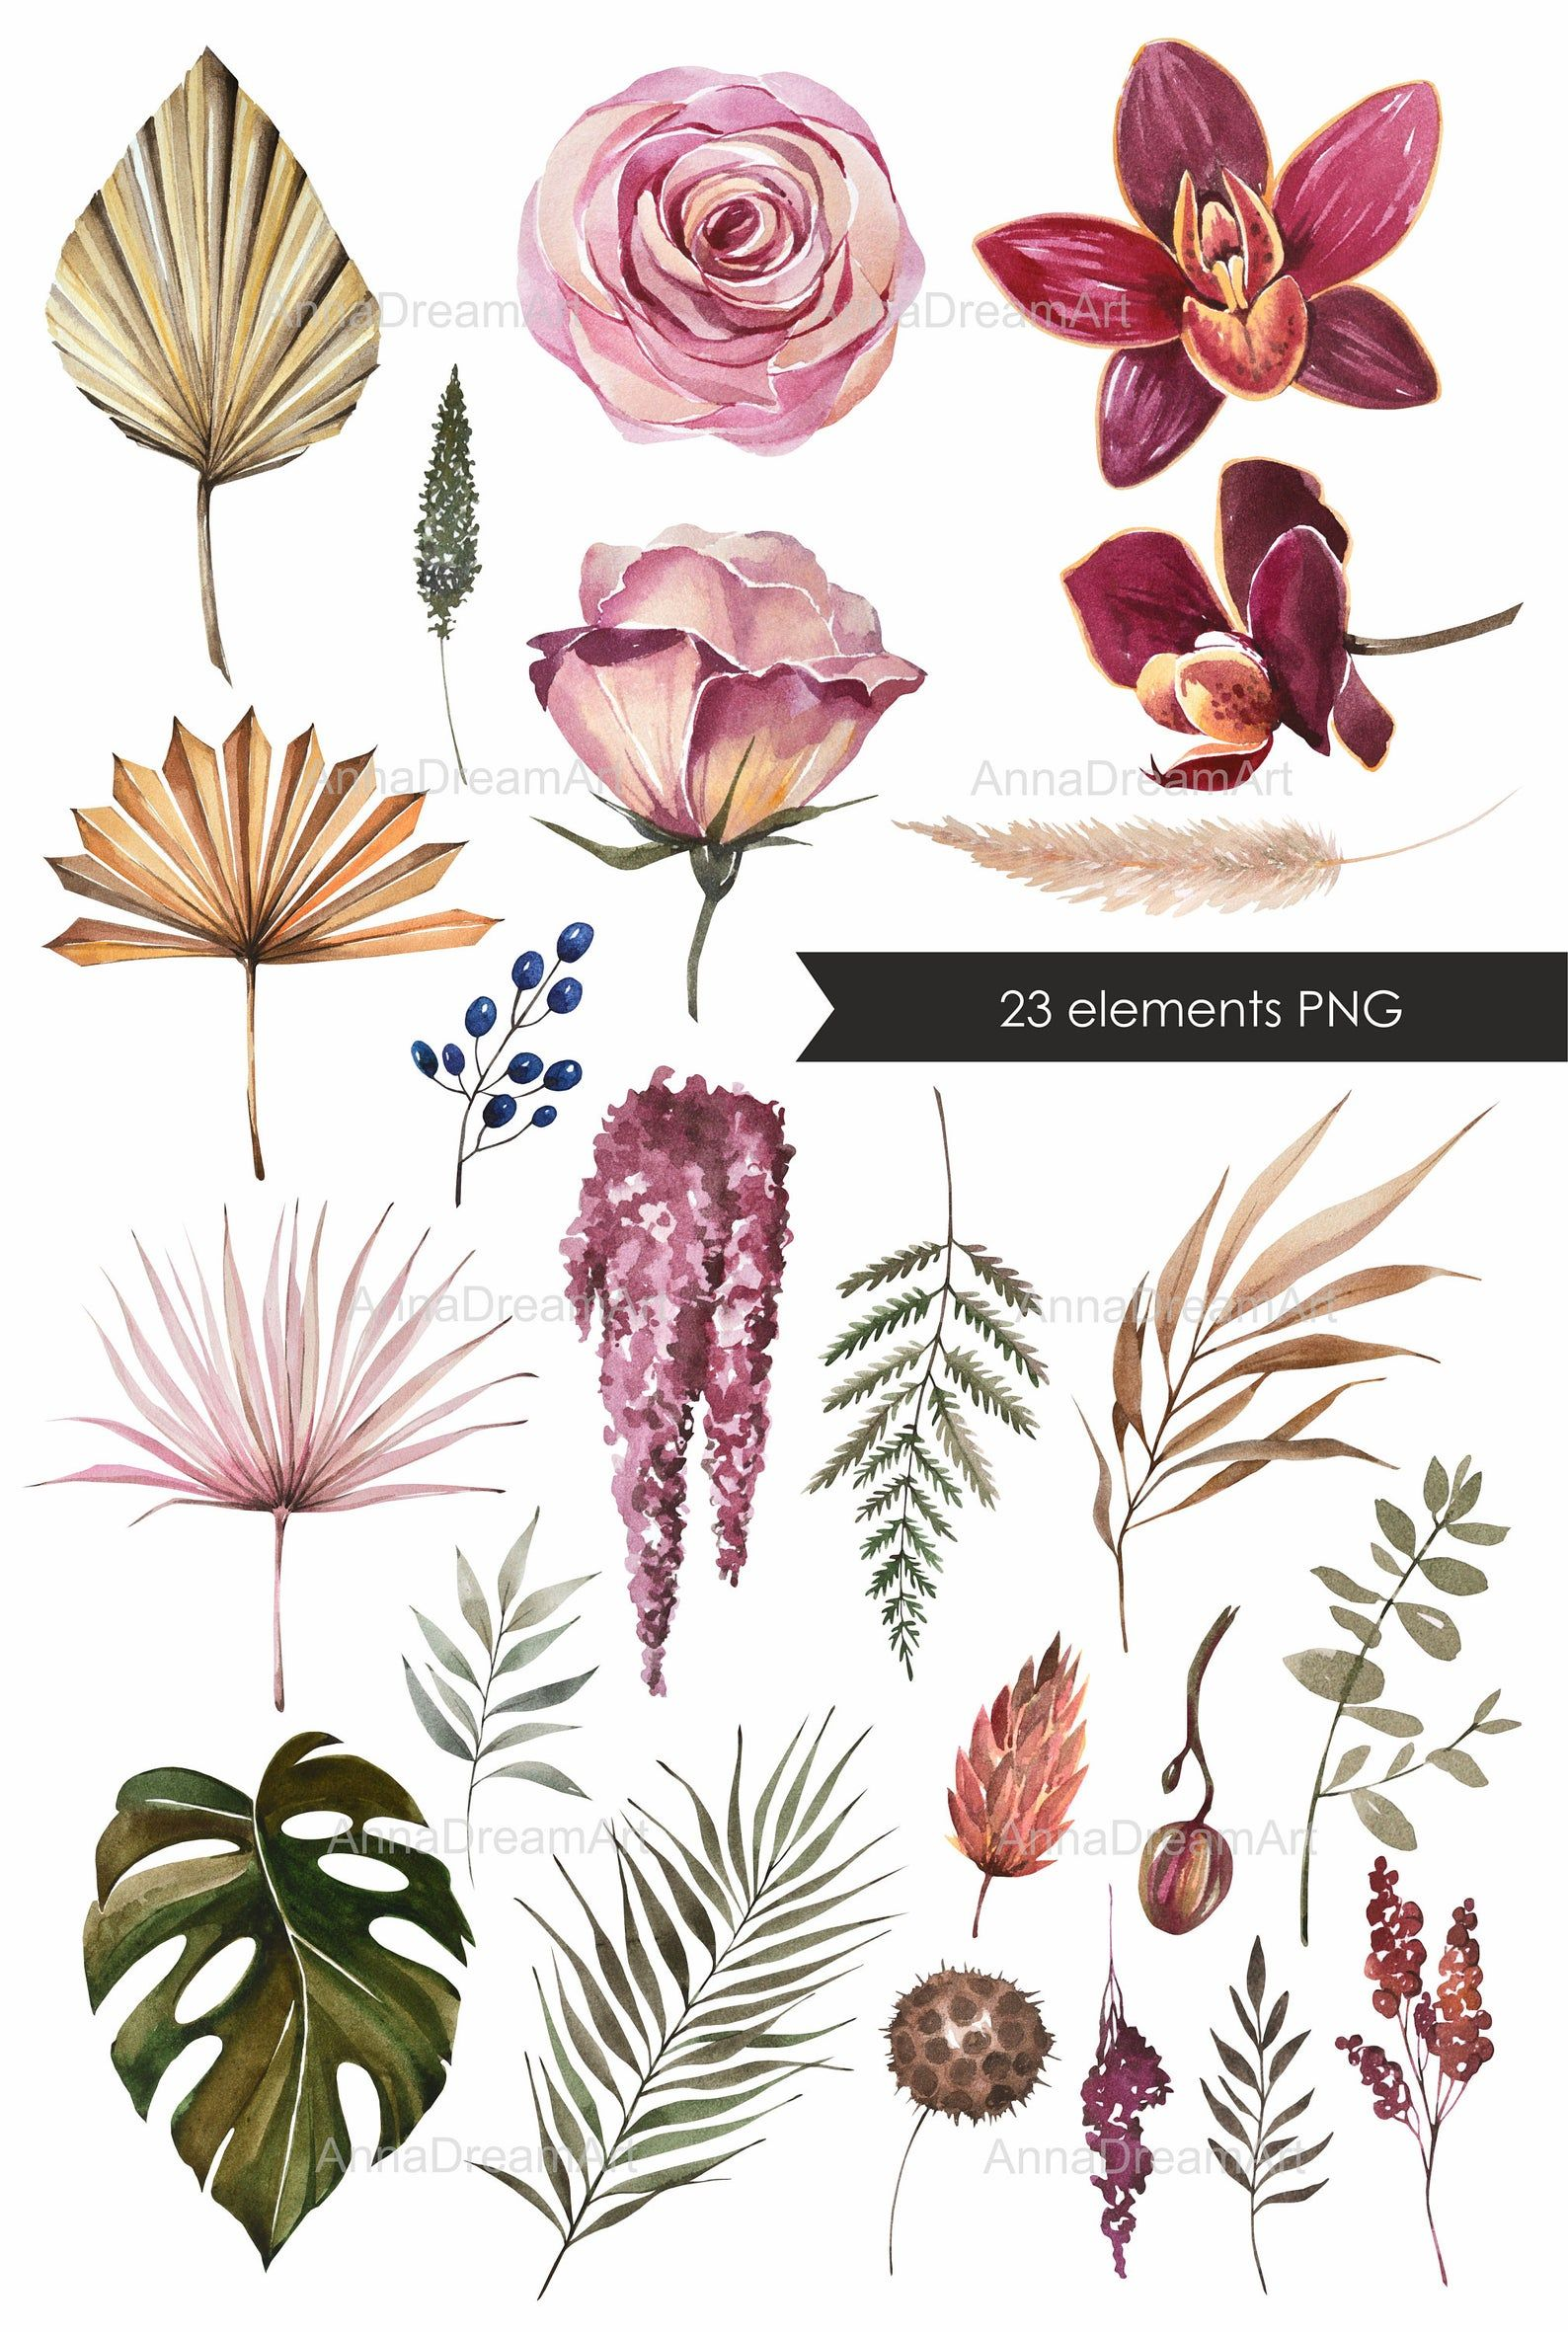 Watercolor Clipart Dried Flowers And Leaves Flower Elements Etsy Watercolor Flowers Floral Wreaths Illustration Leaf Illustration